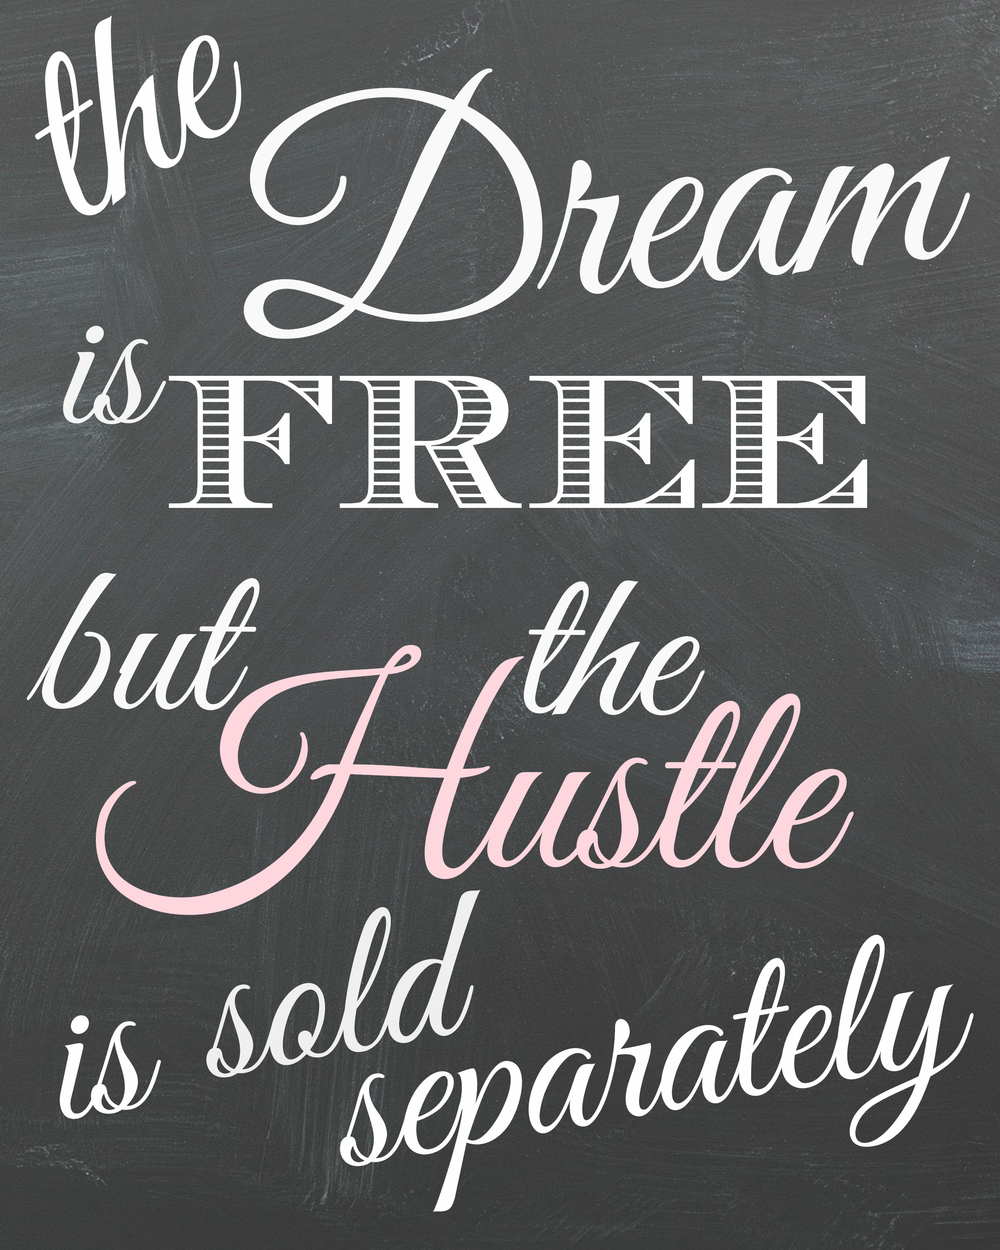 This image is above my desk, and occasionally in my blog videos. It reminds me to keep working towards my goals. Feel free to print it - royalty free (I created it) - as my gift to you and a reminder to hustle.